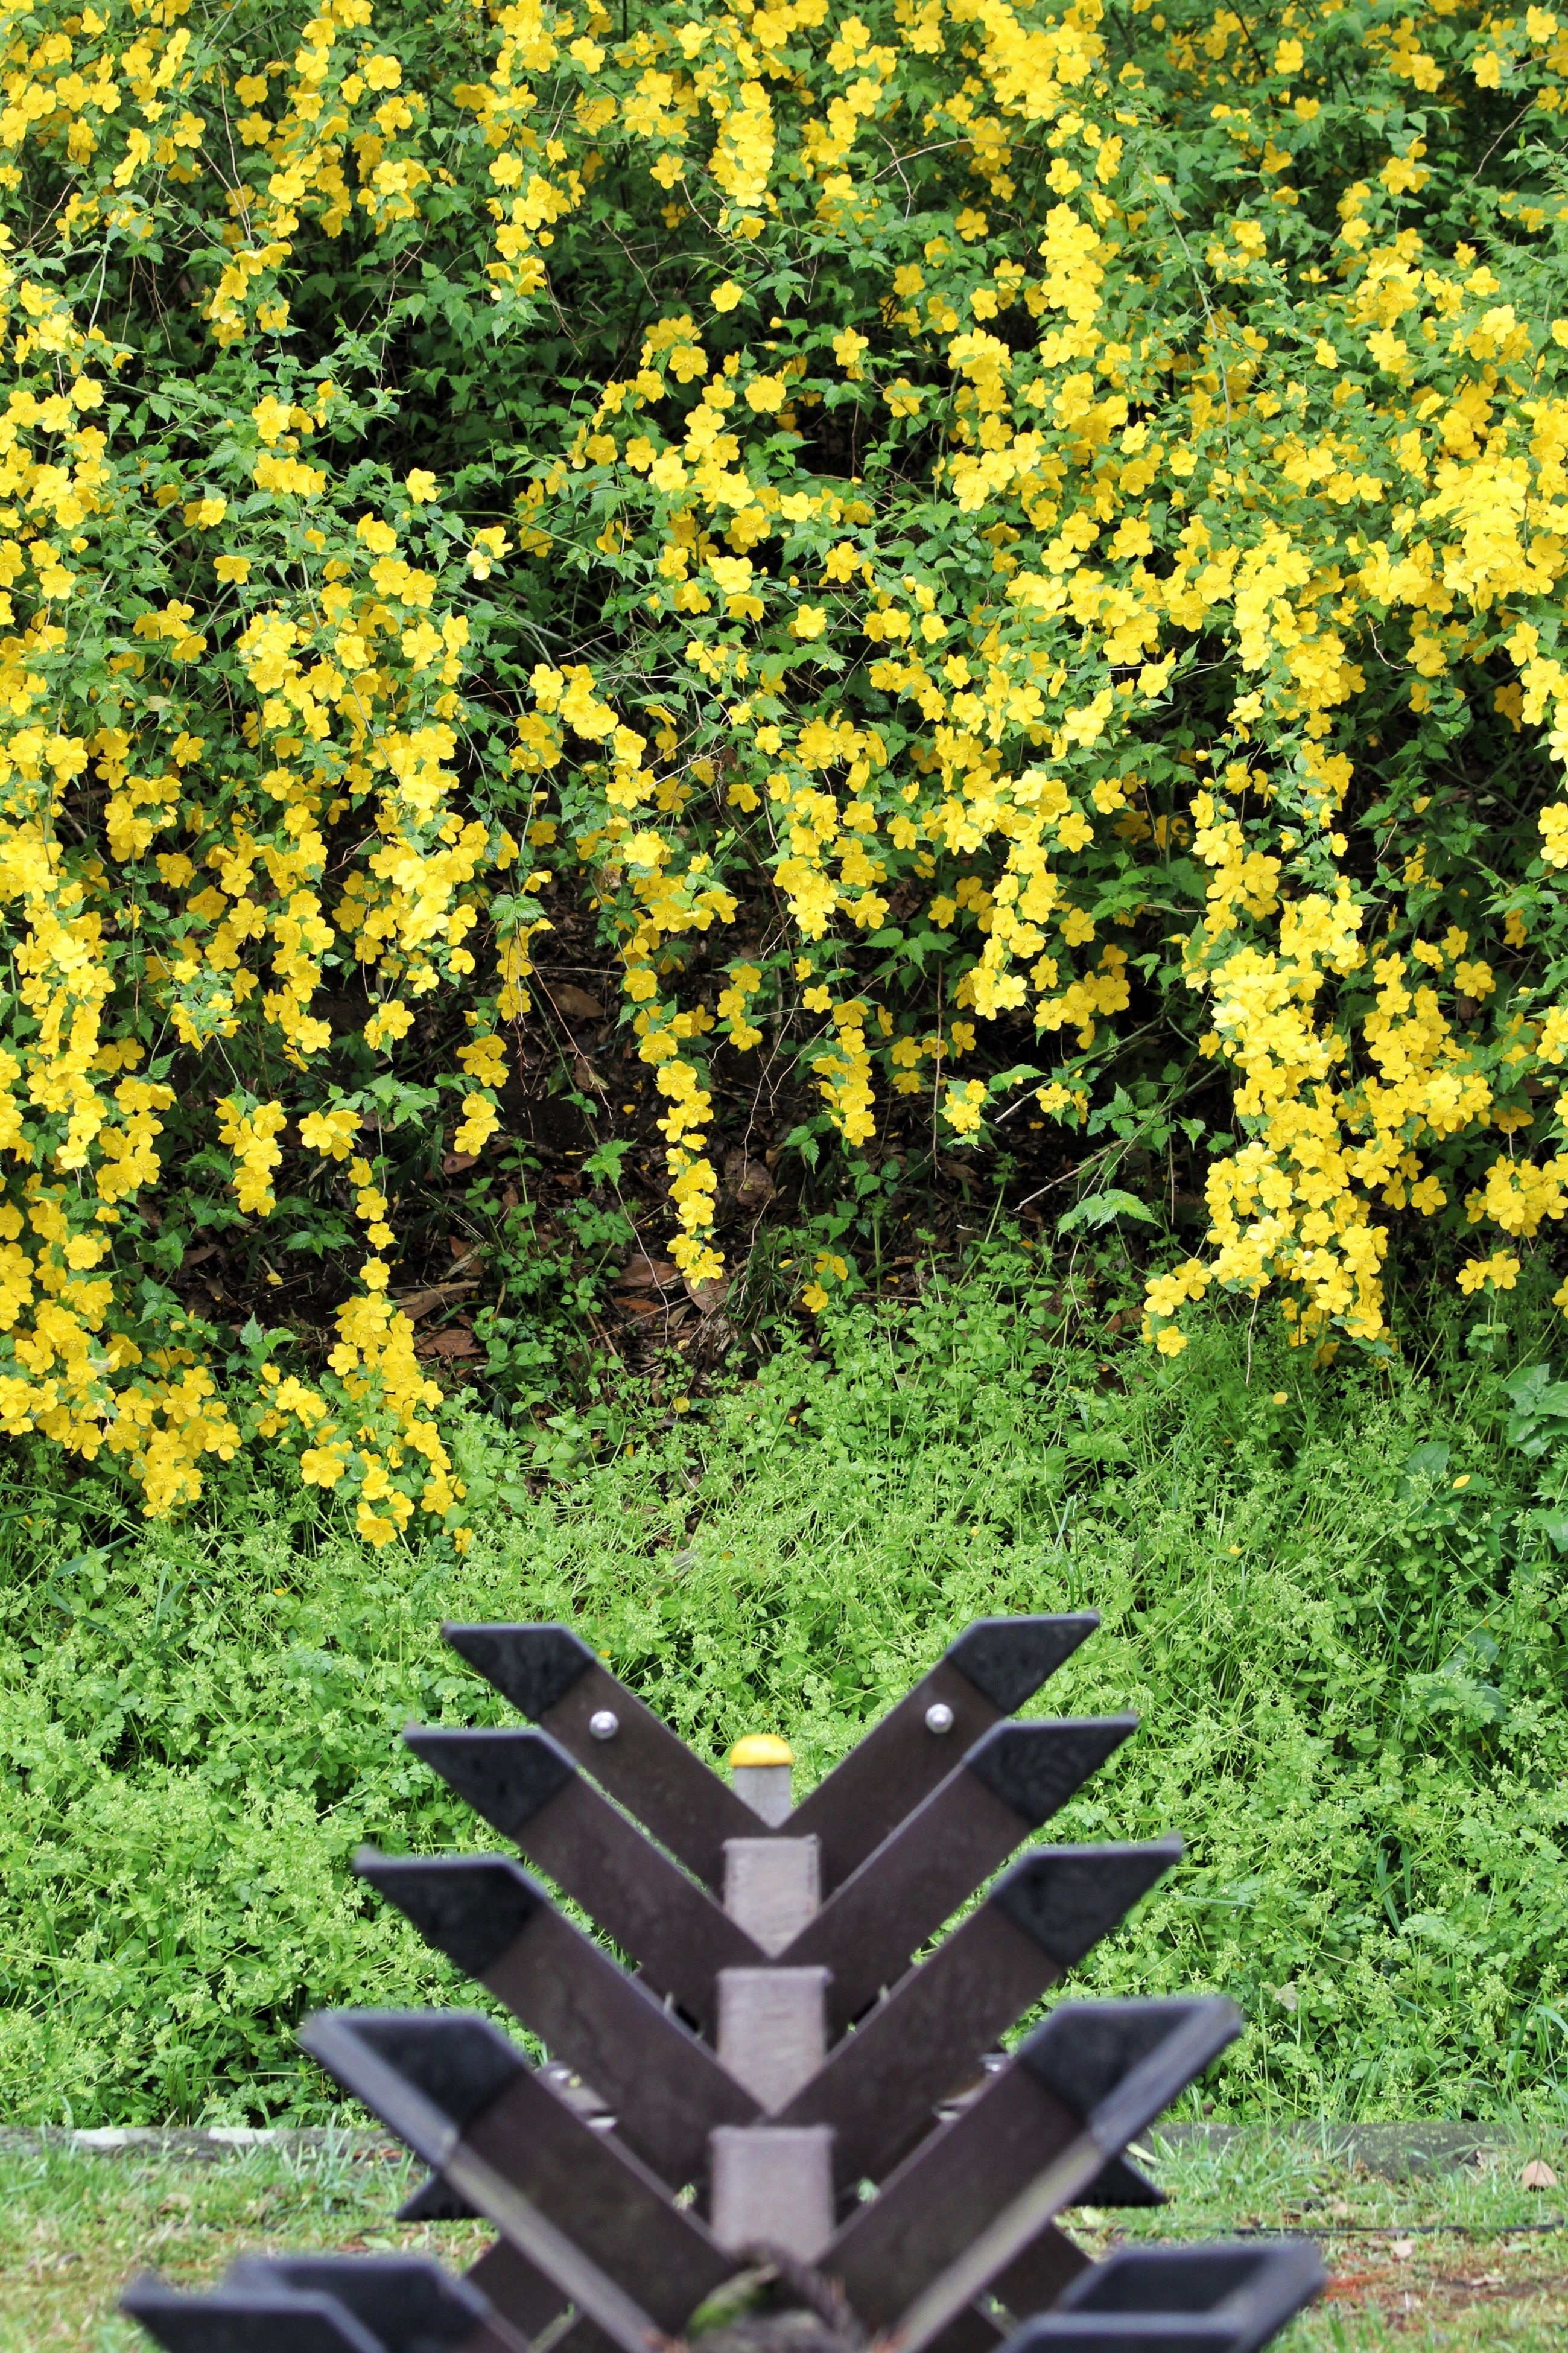 yellow, growth, flower, beauty in nature, nature, plant, green color, freshness, field, park - man made space, tree, tranquility, grass, leaf, high angle view, lush foliage, abundance, outdoors, day, fragility